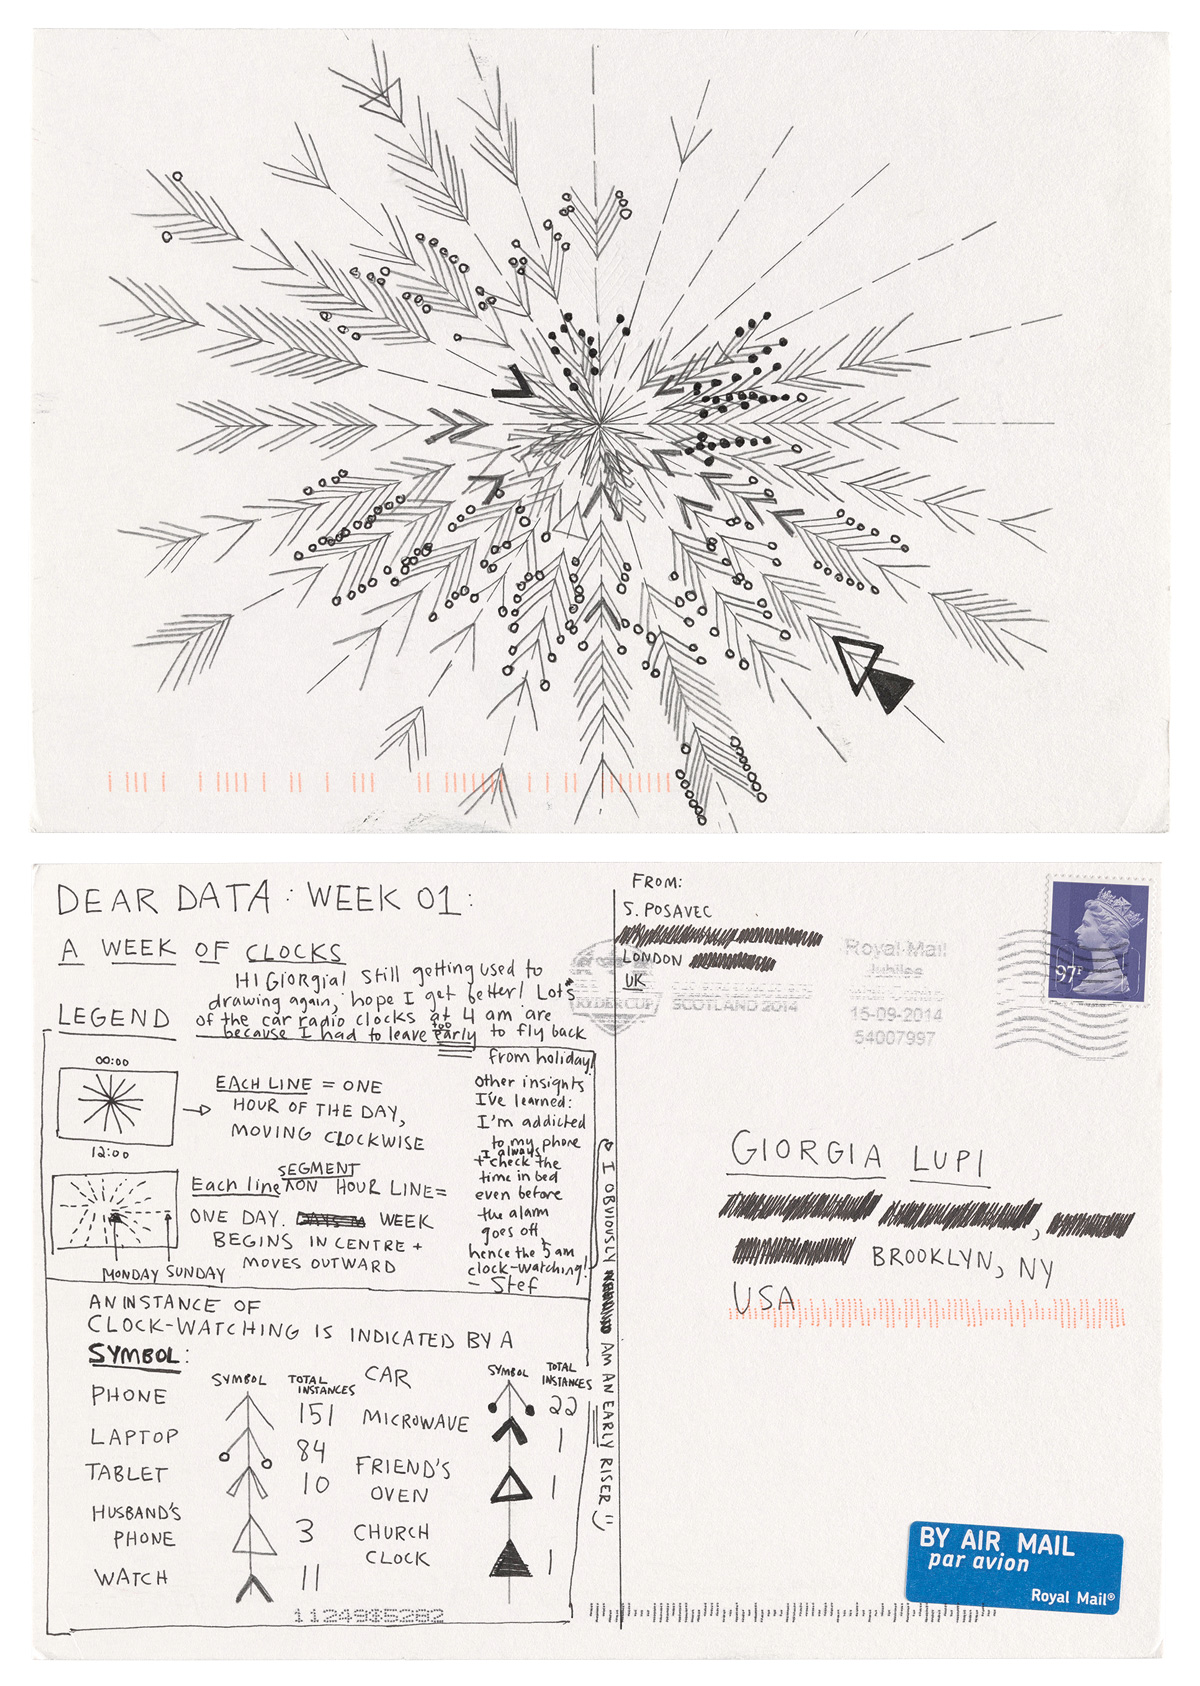 Dear Data: A Lyrical Illustrated Serenade to How Our